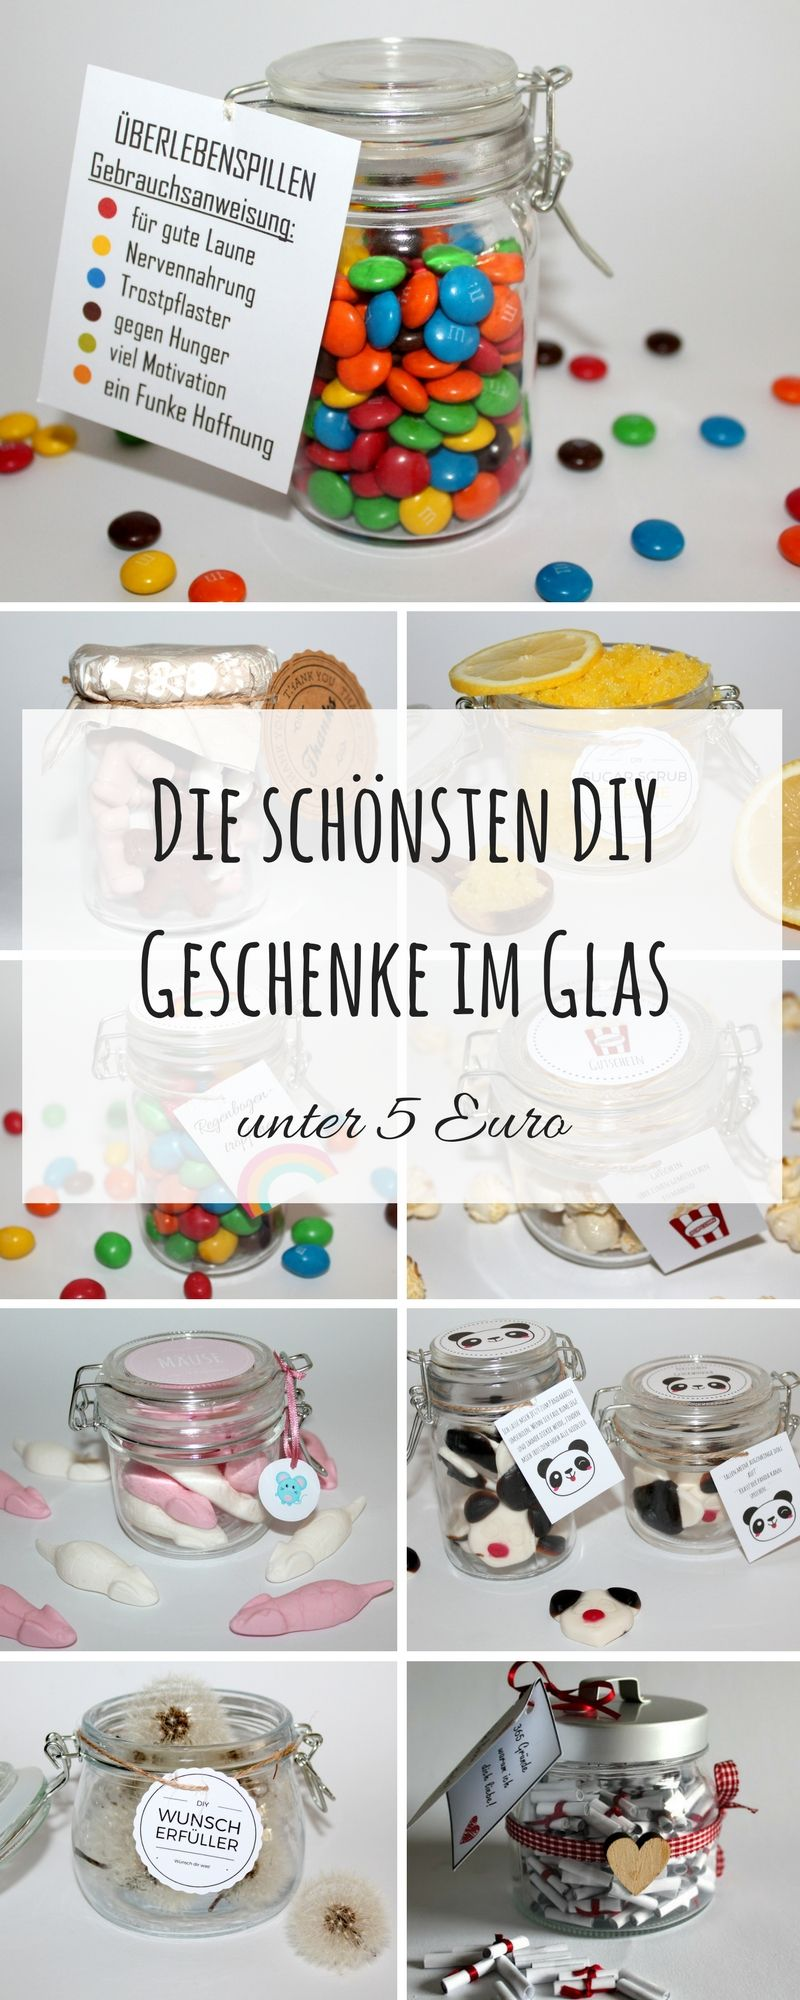 diy die sch nsten diy geschenke im glas unter 5 euro. Black Bedroom Furniture Sets. Home Design Ideas